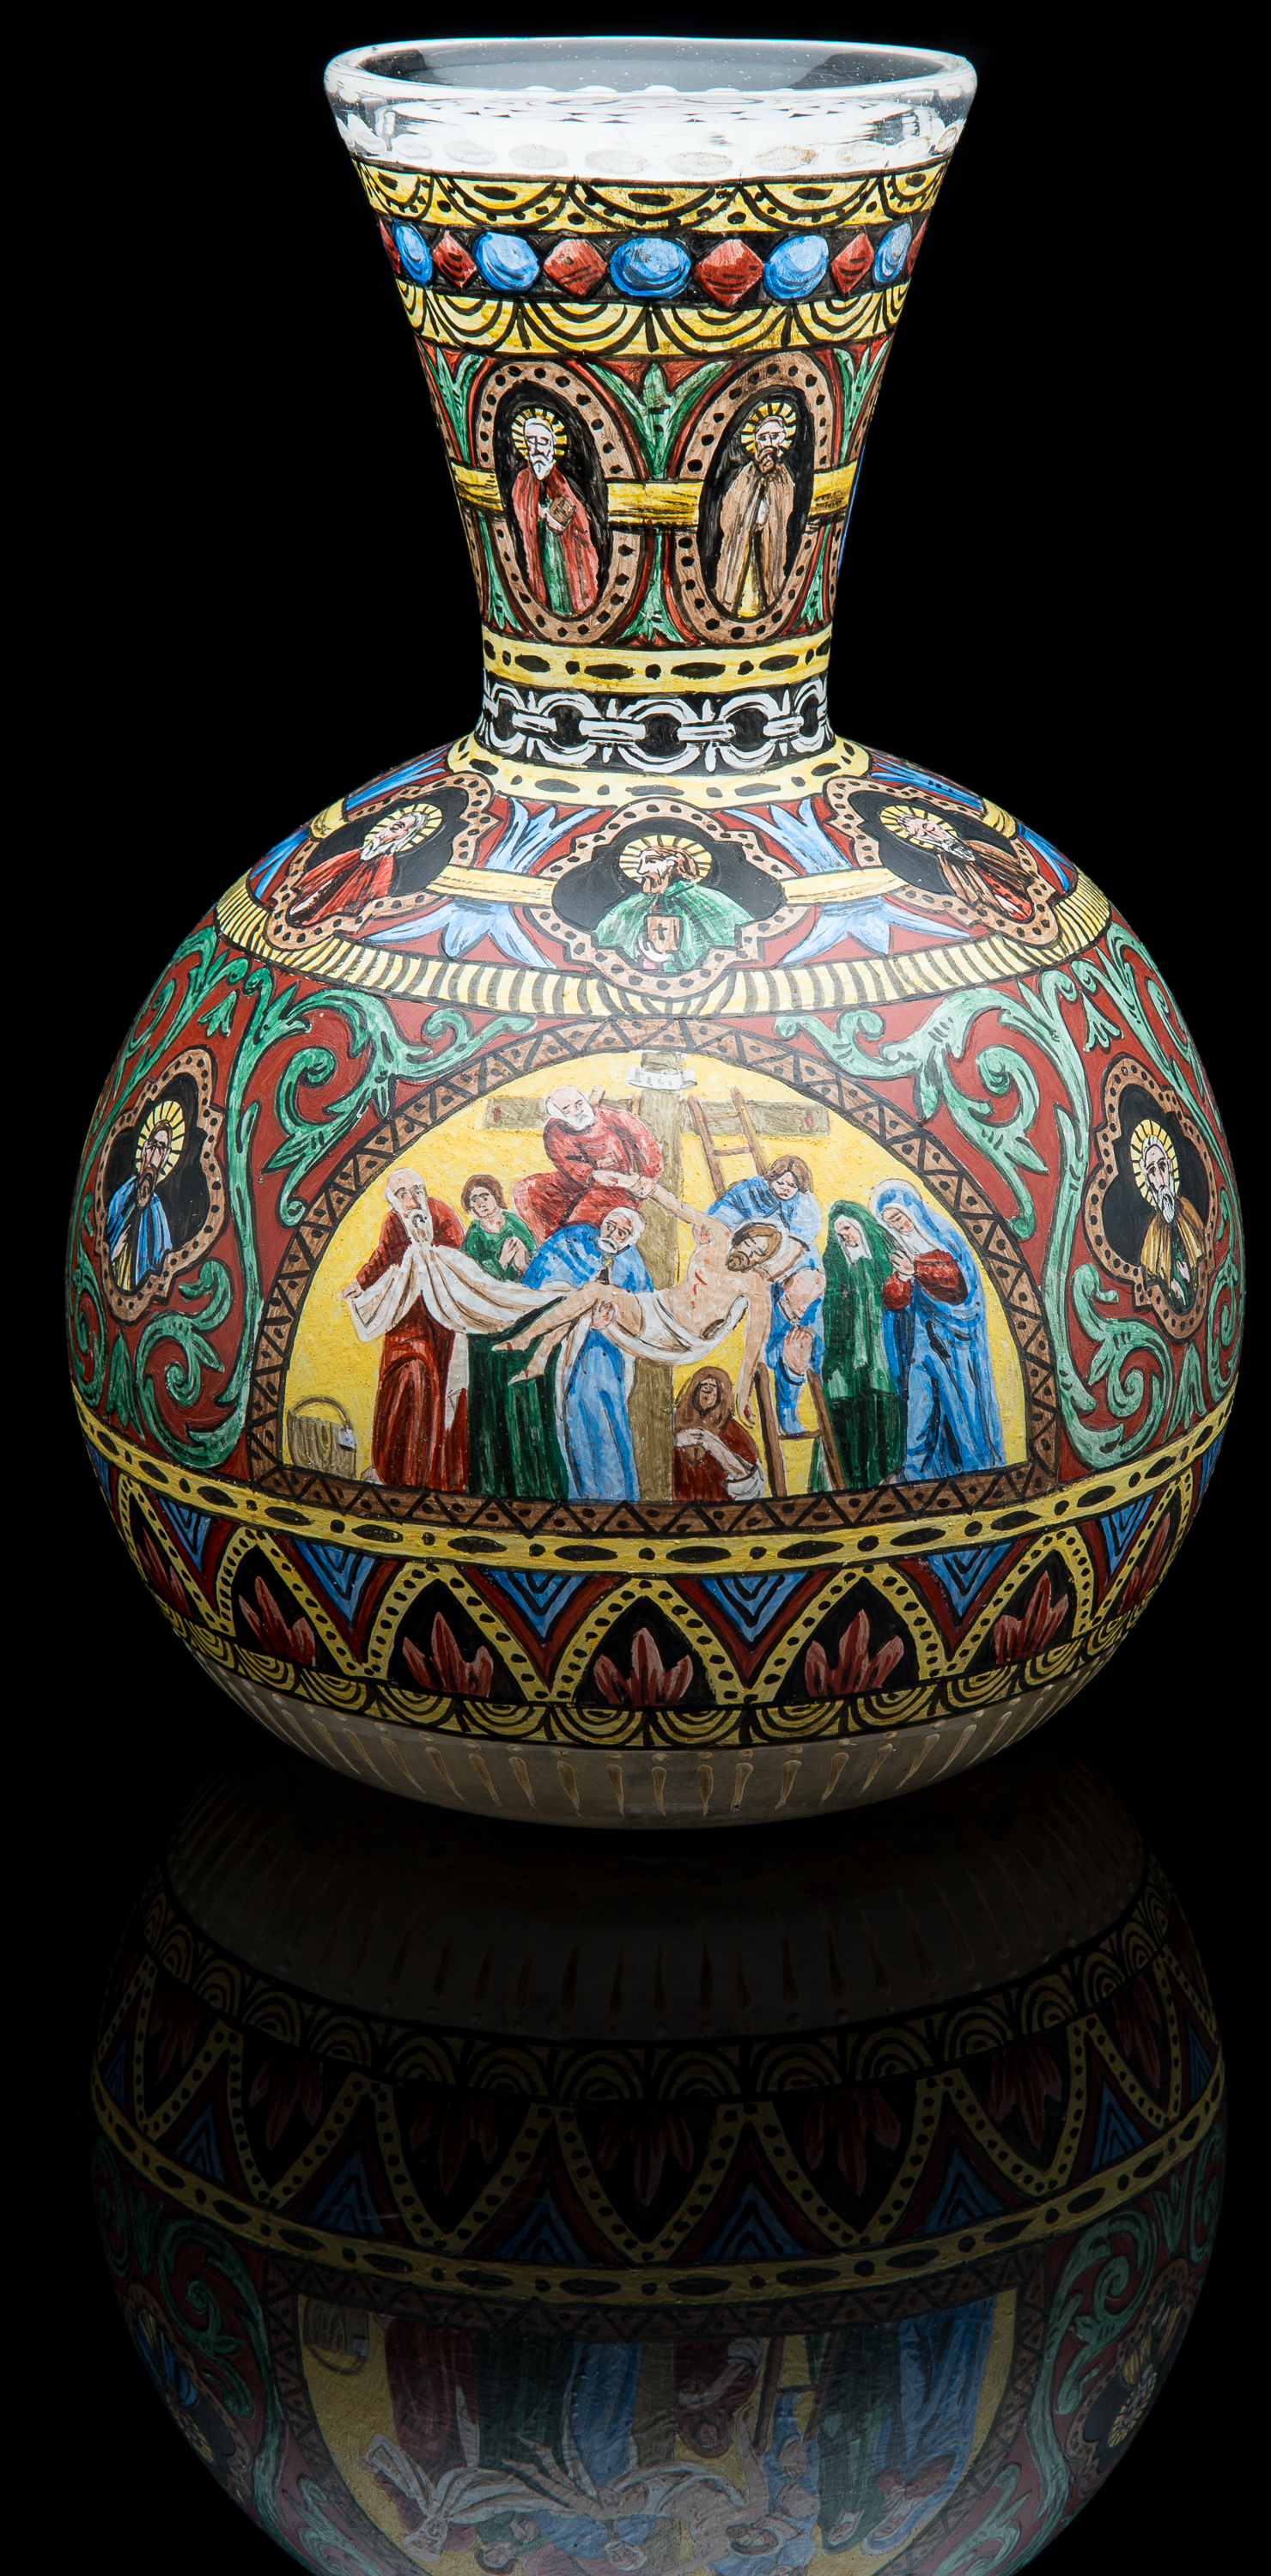 Unknown,  Colorless Vase Painted with Scenes from the Life of Christ  (circa 1885, glass, 11.25 inches), VV.1013